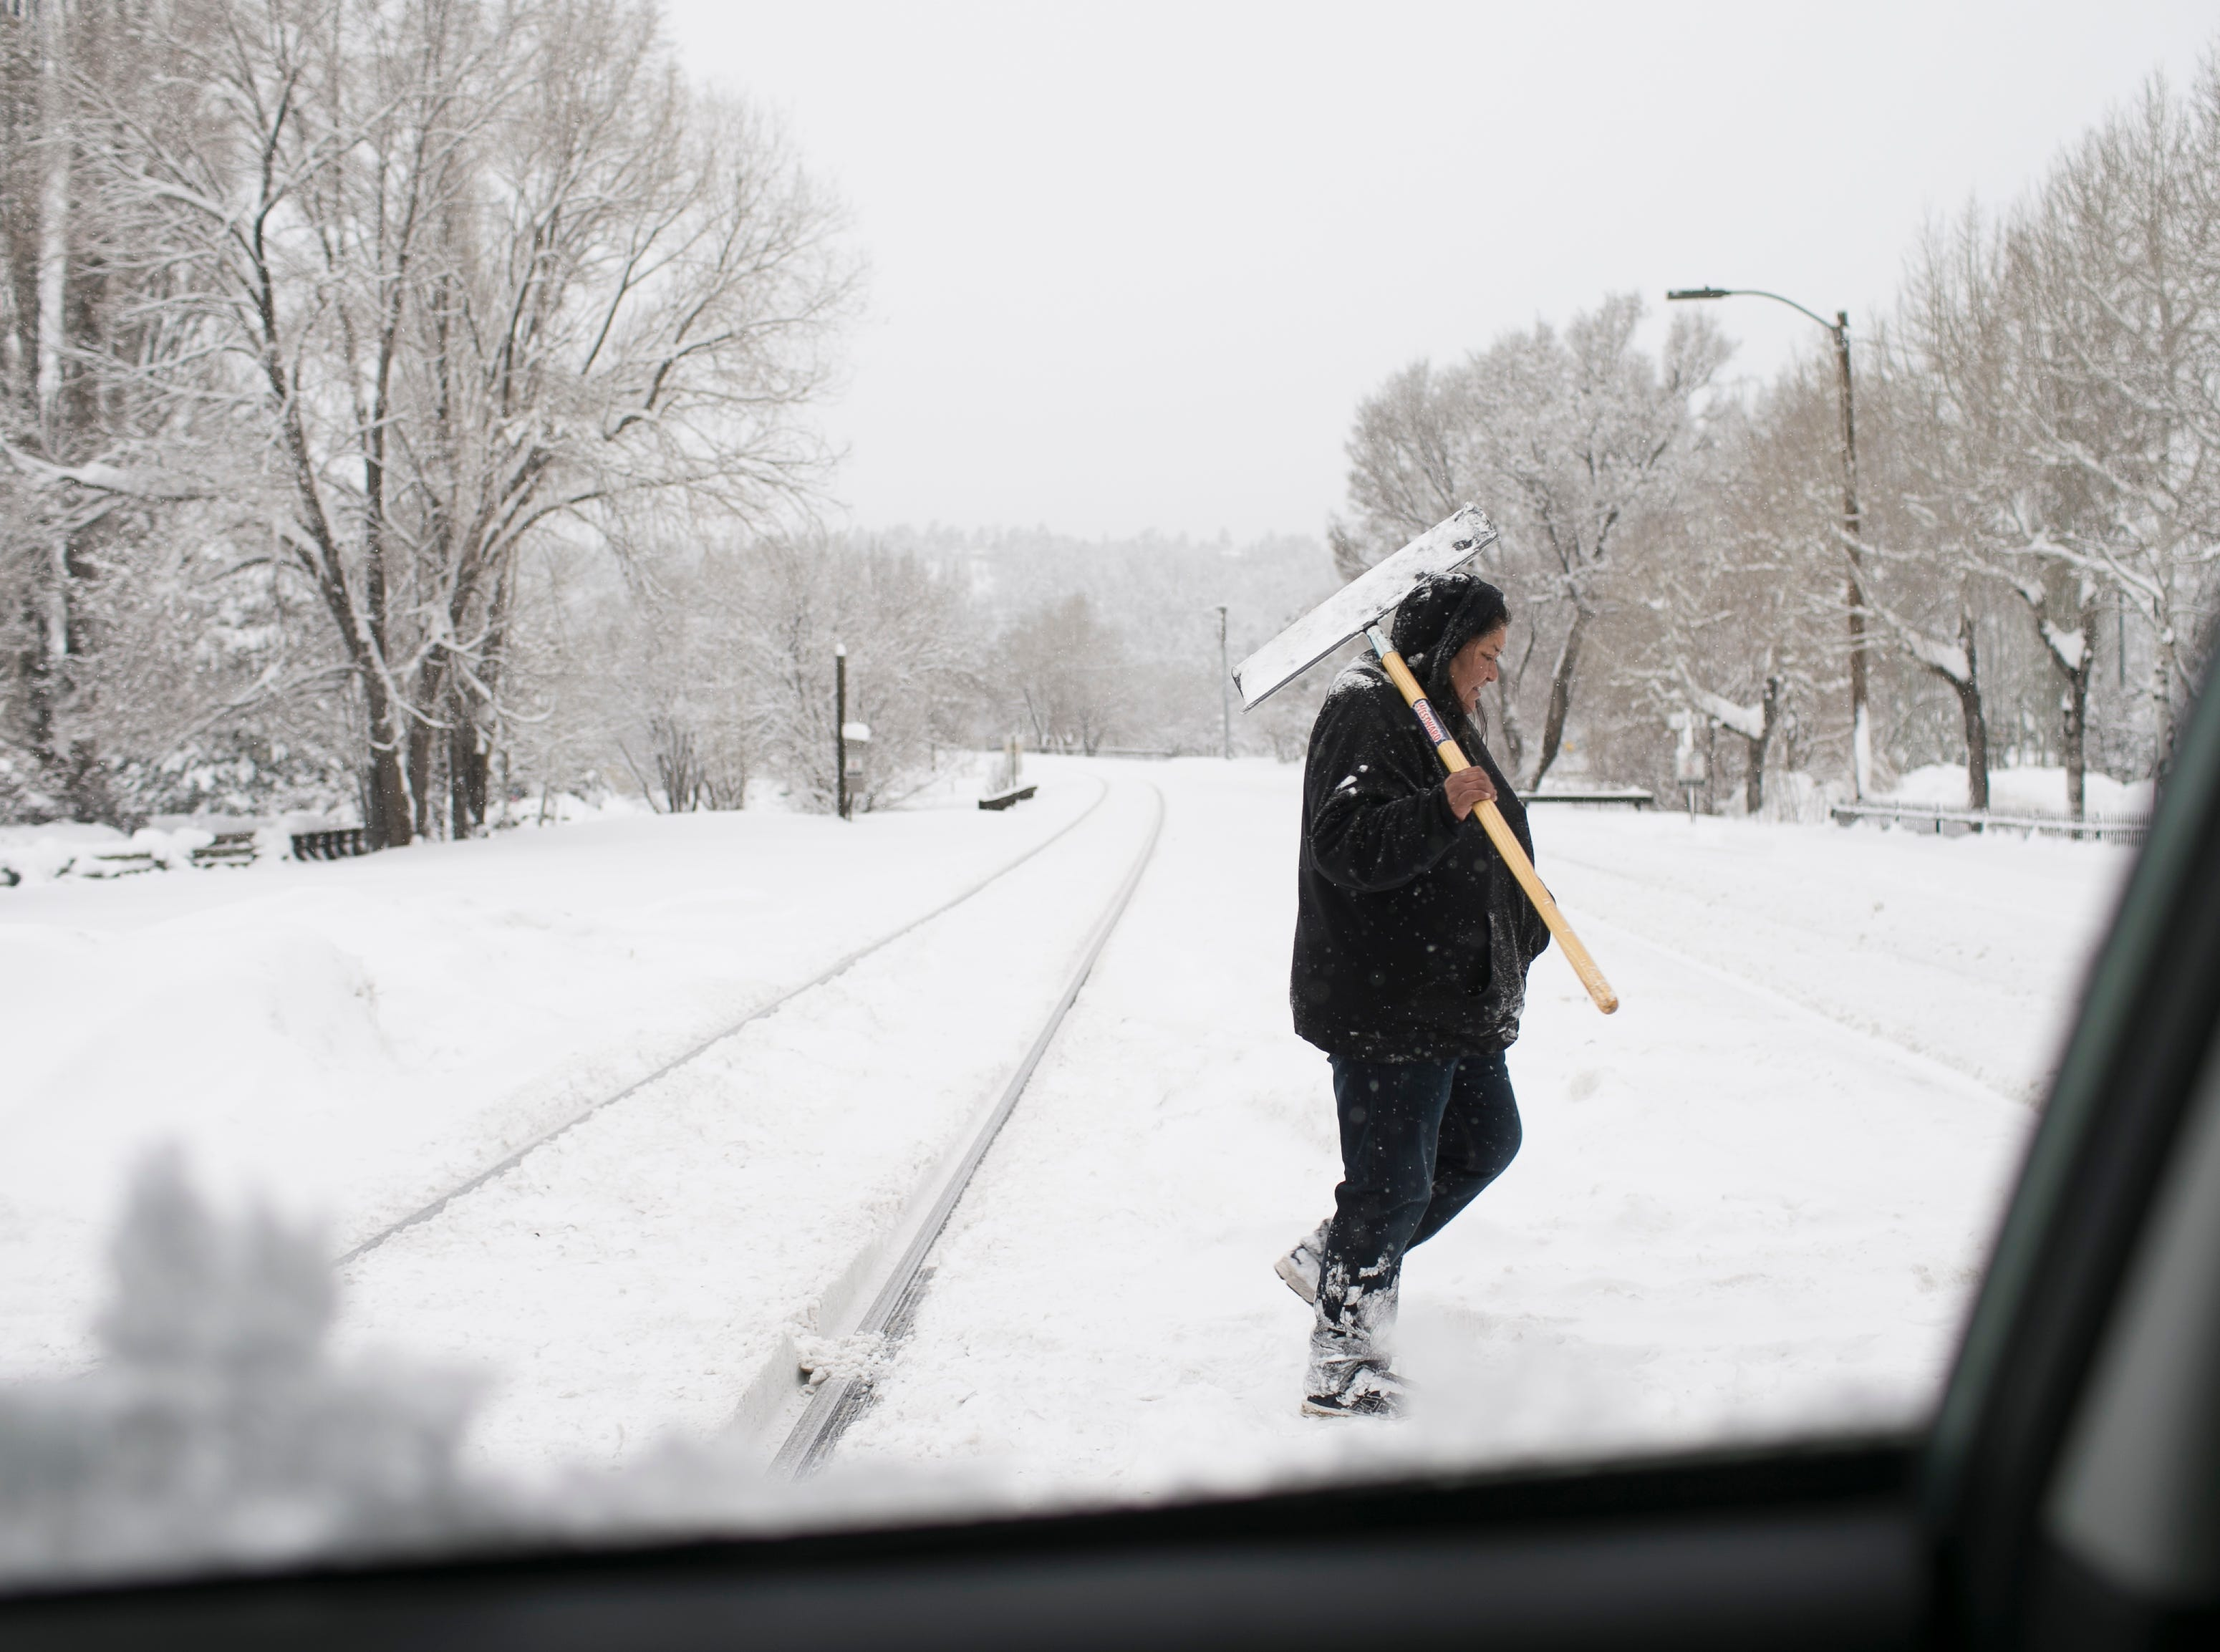 Pablena Honyumptawa carries a shovel to clean up snow the morning after a storm in Flagstaff on Feb. 22, 2019.